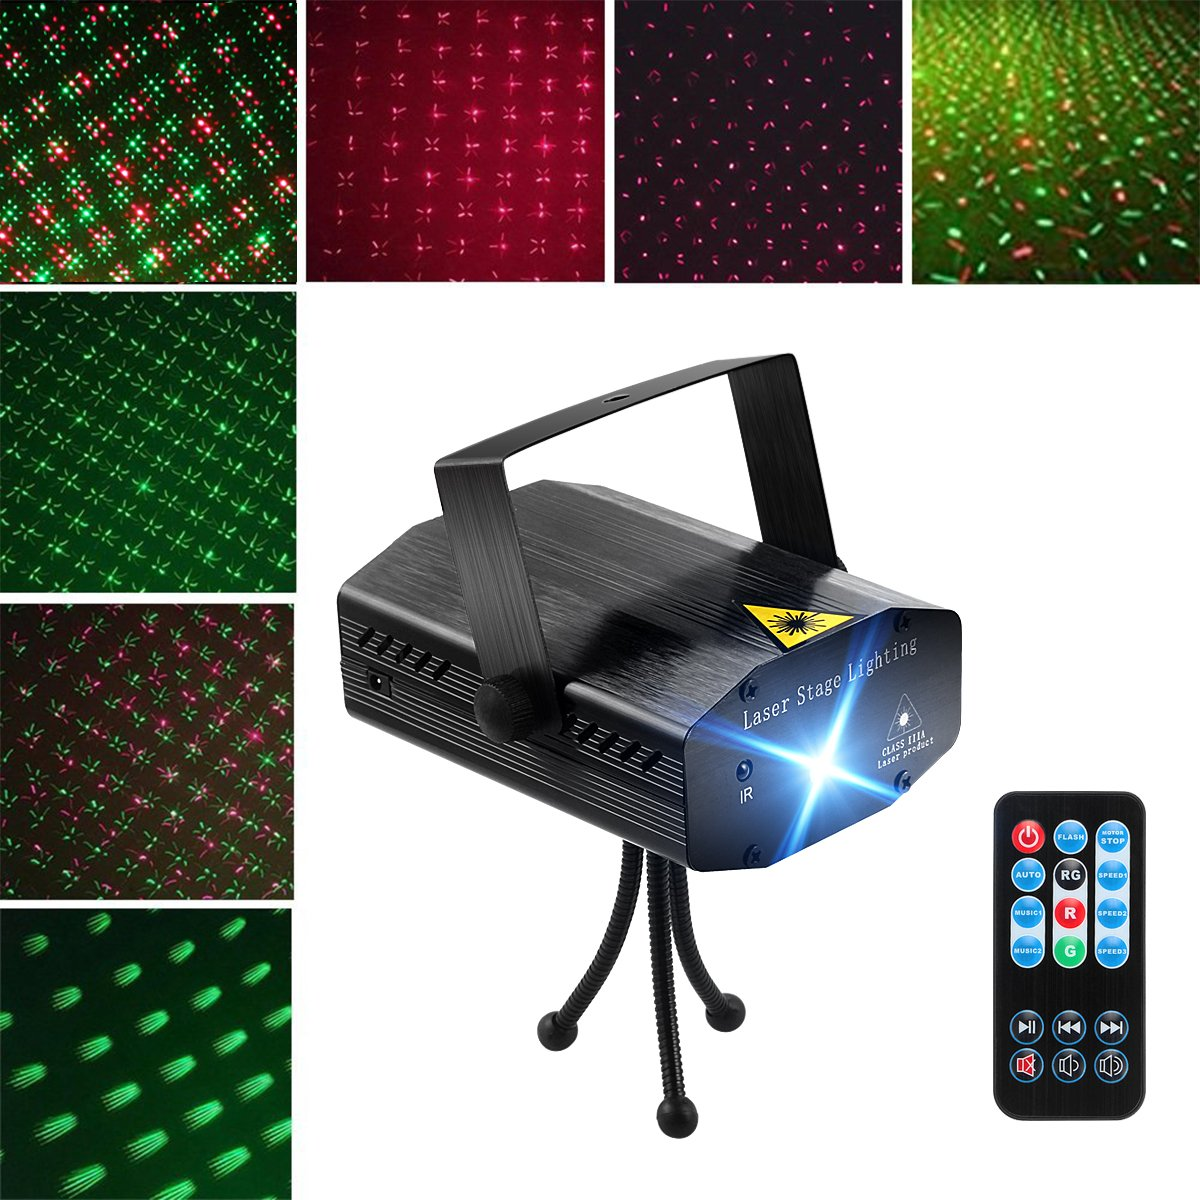 Blingco LED Projector Laser Lights, Mini Auto Flash RG Led Stage Lights Sound Activated for DJ Disco Party Home Show Birthday Party Wedding Stage Lighting with Remote Control (Black)